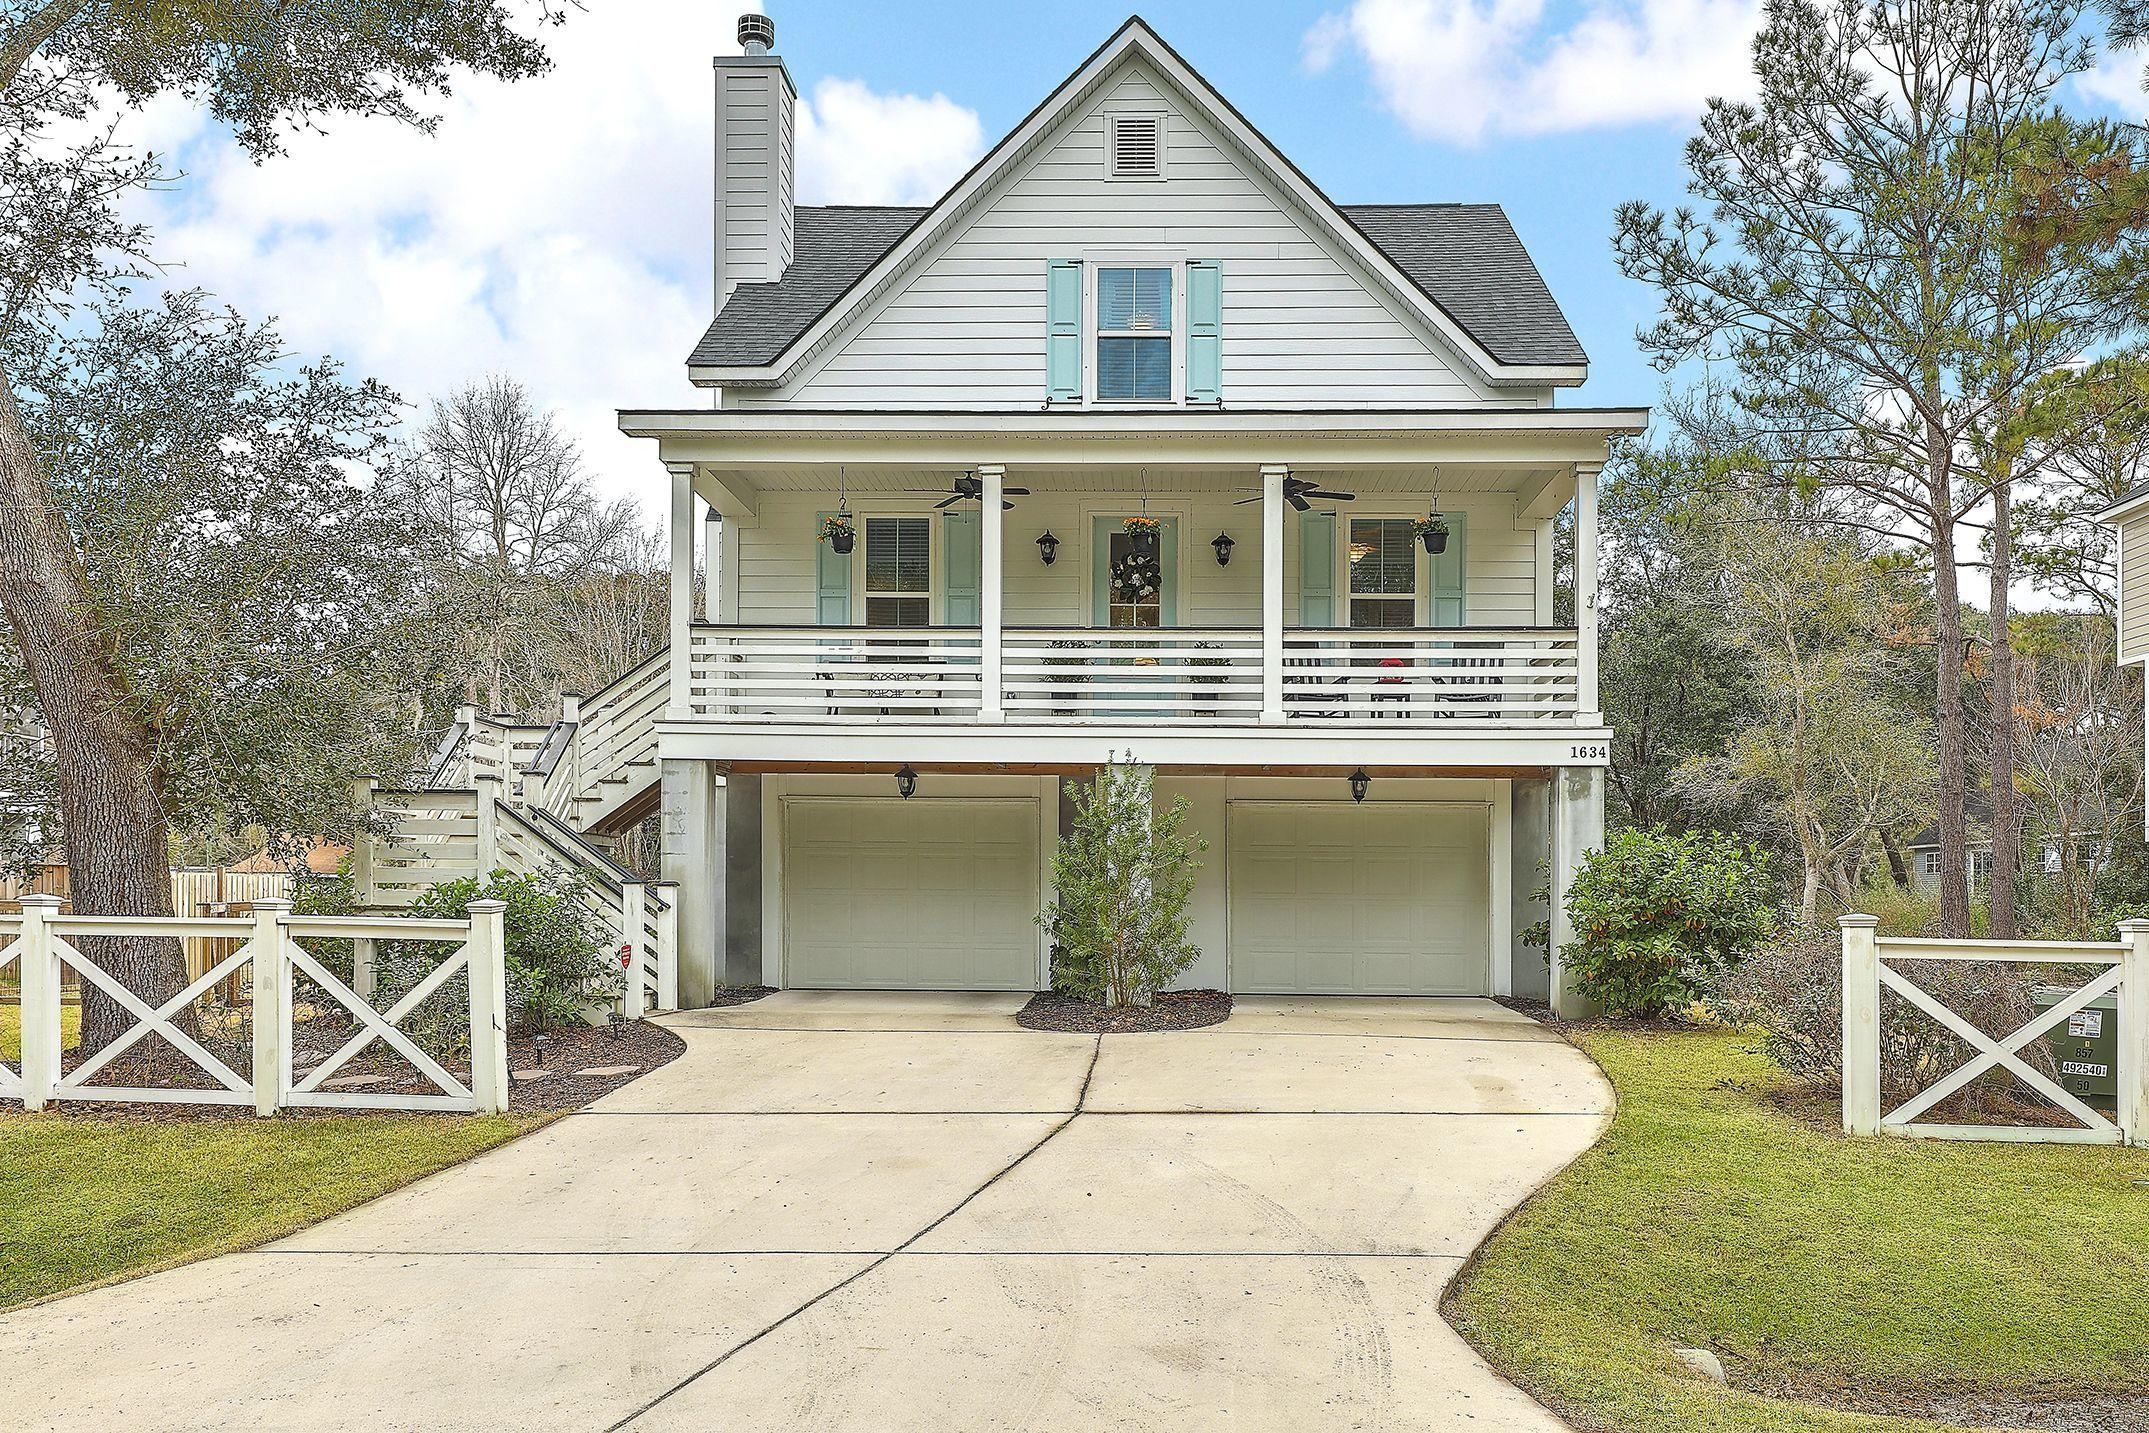 Cottages on Periwinkle Homes For Sale - 1634 Periwinkle, Mount Pleasant, SC - 34